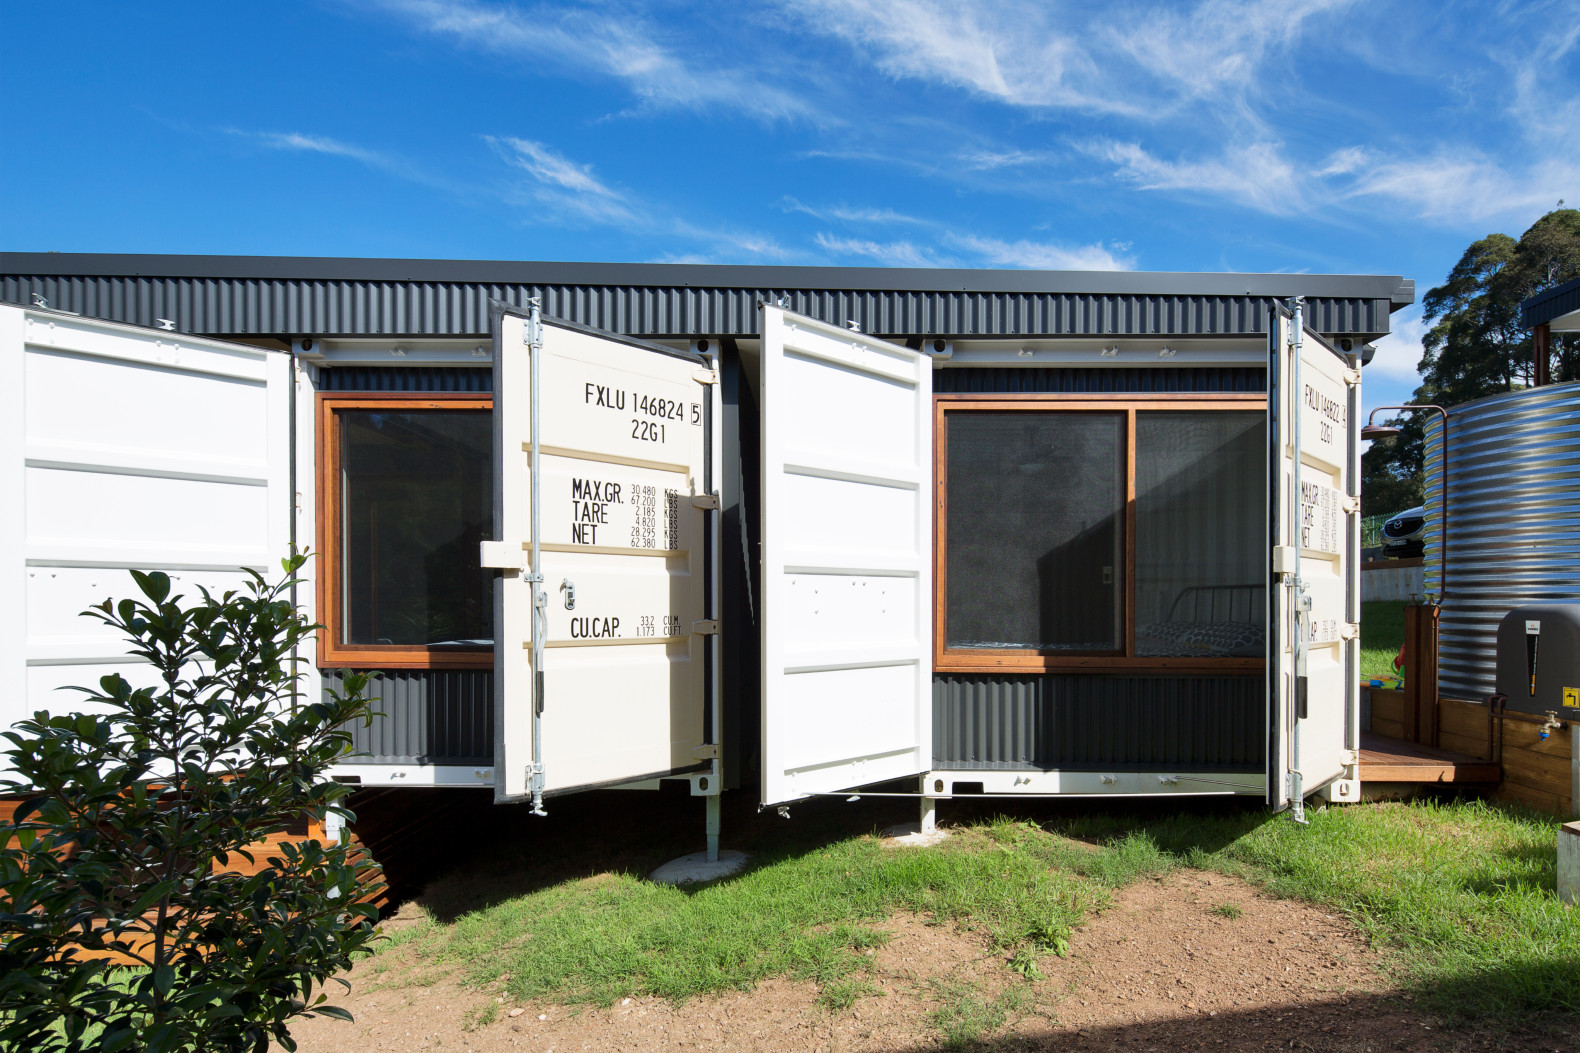 Container House These Four Shipping Containers Form An Eco-friendly Home